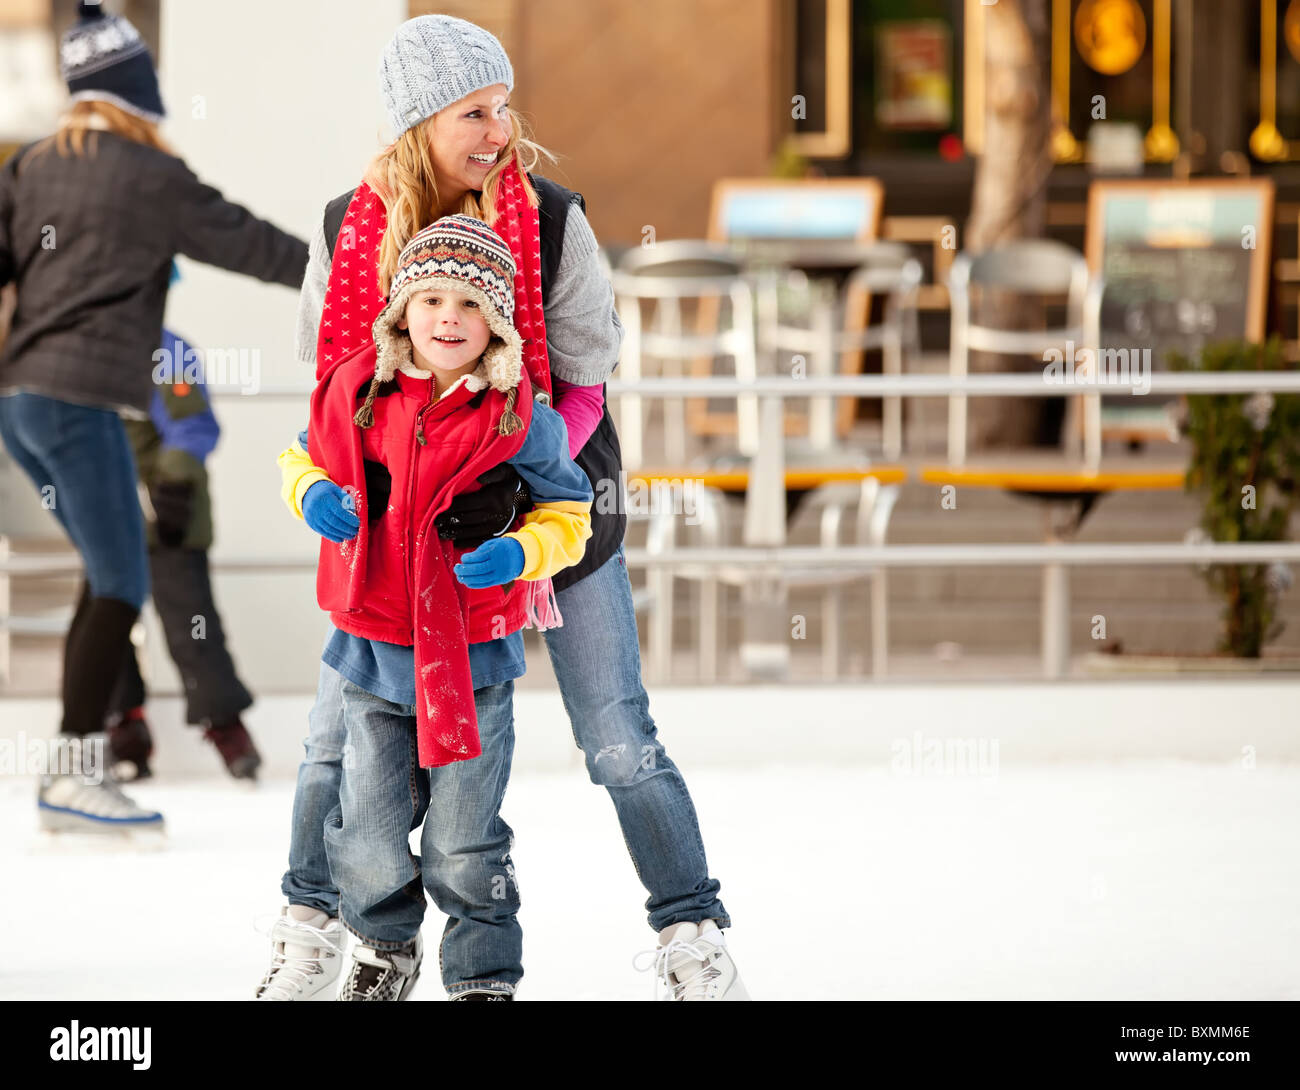 a mother helps her son learn to ice-skate - Stock Image